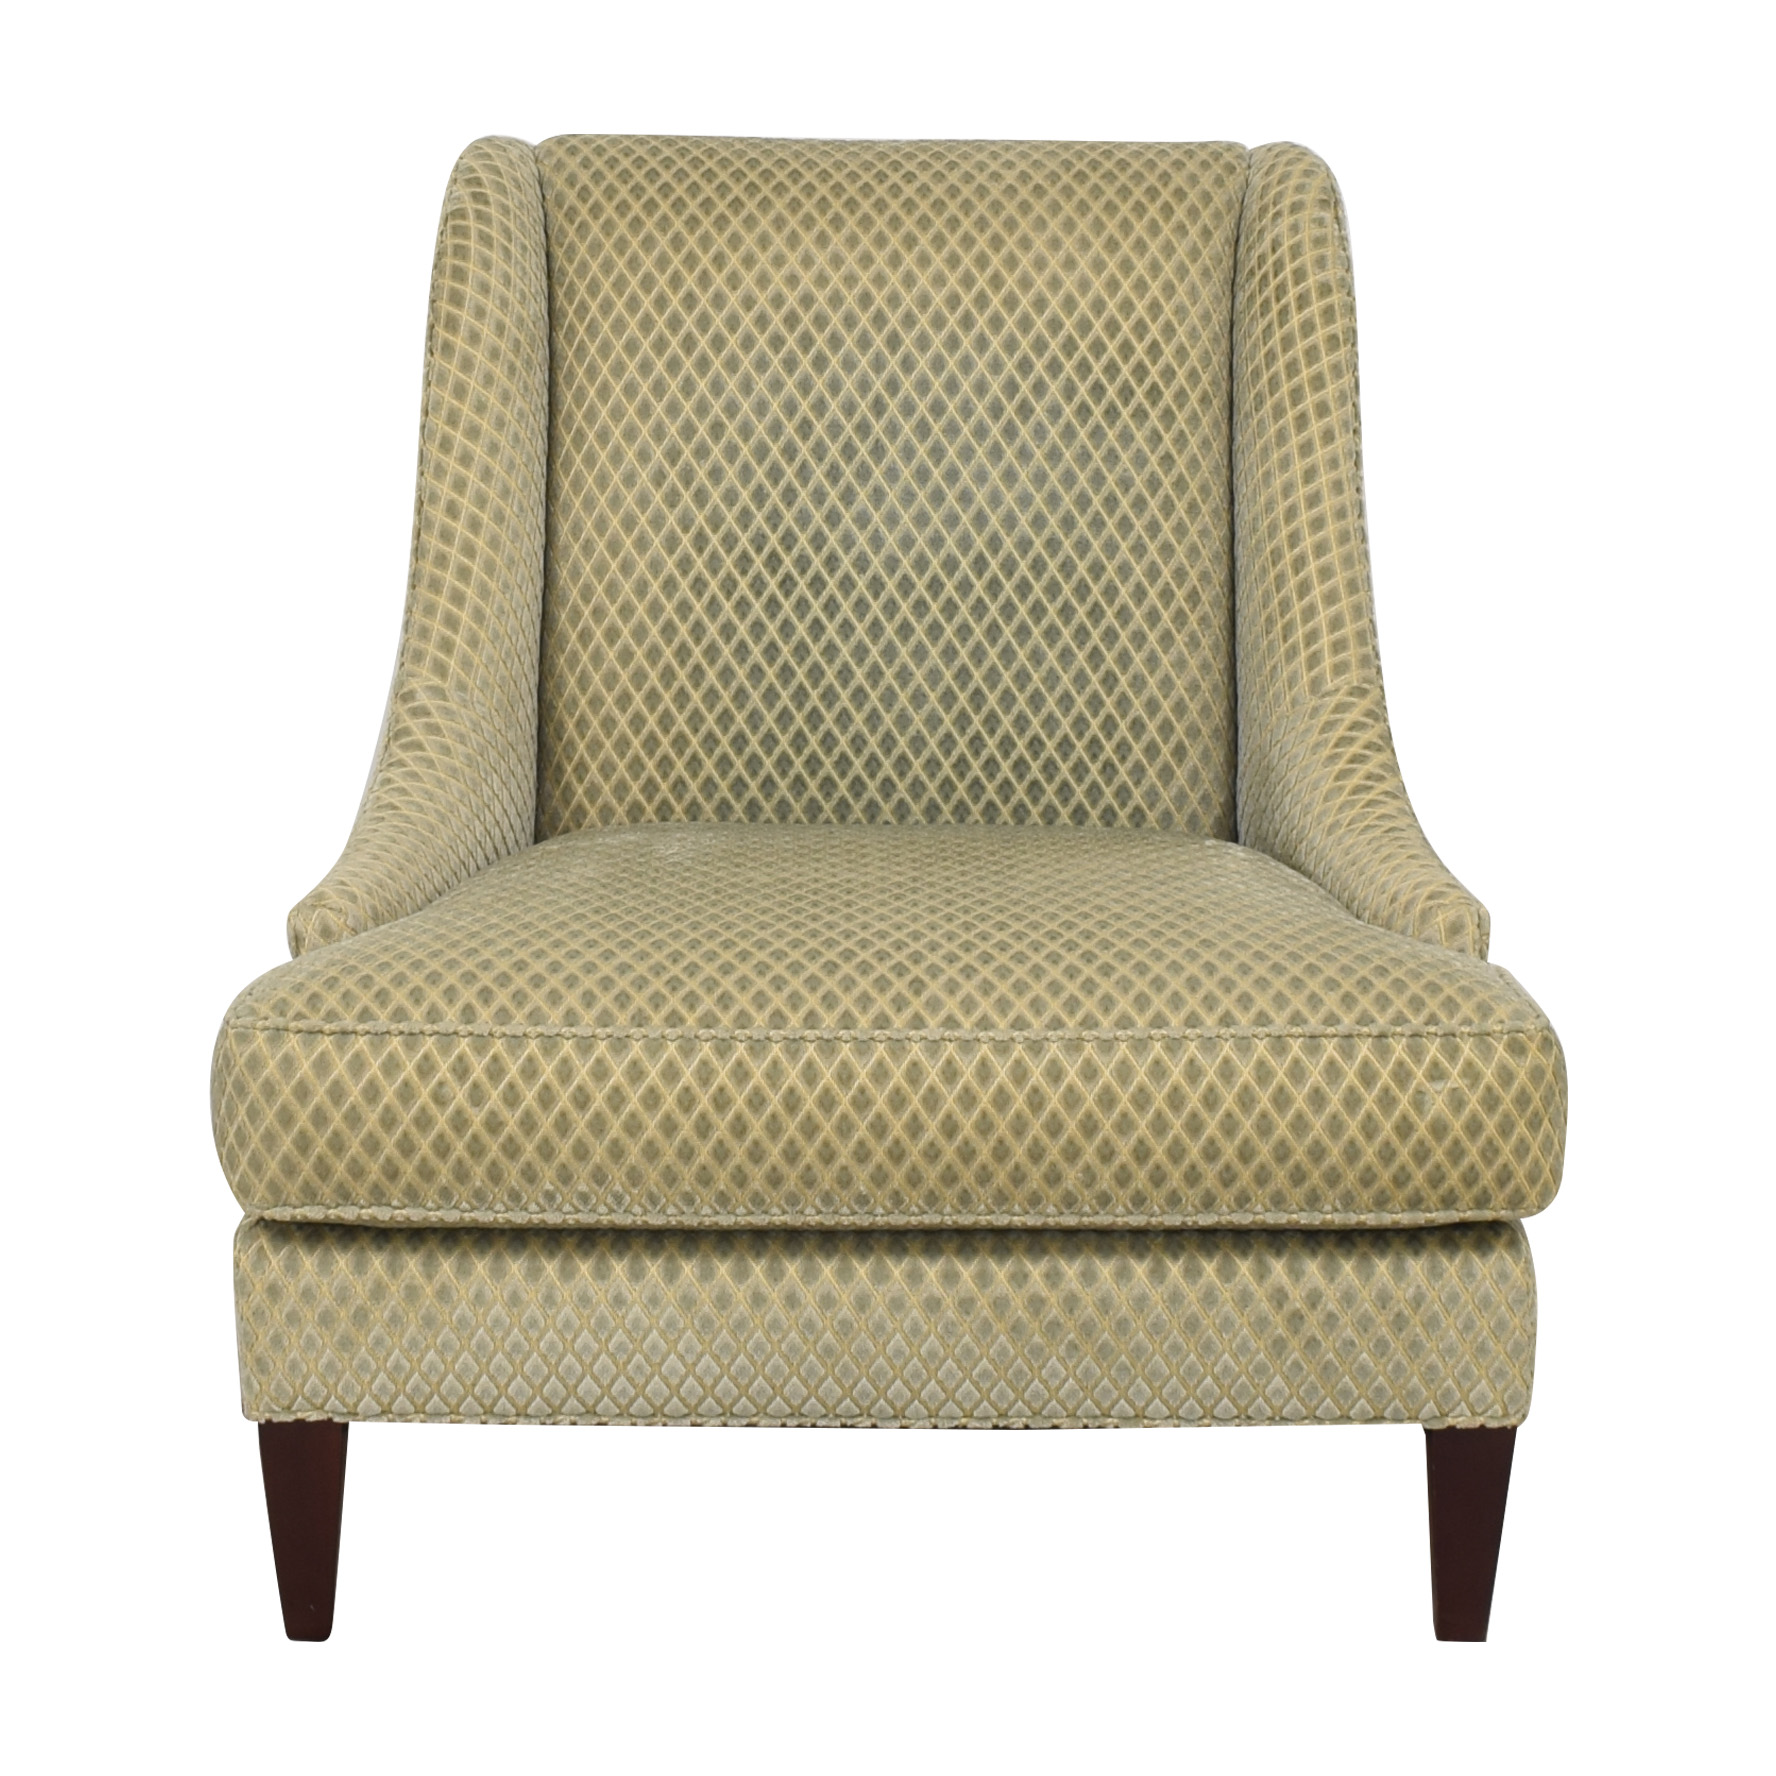 shop Hickory White Hickory White Armless Chair online